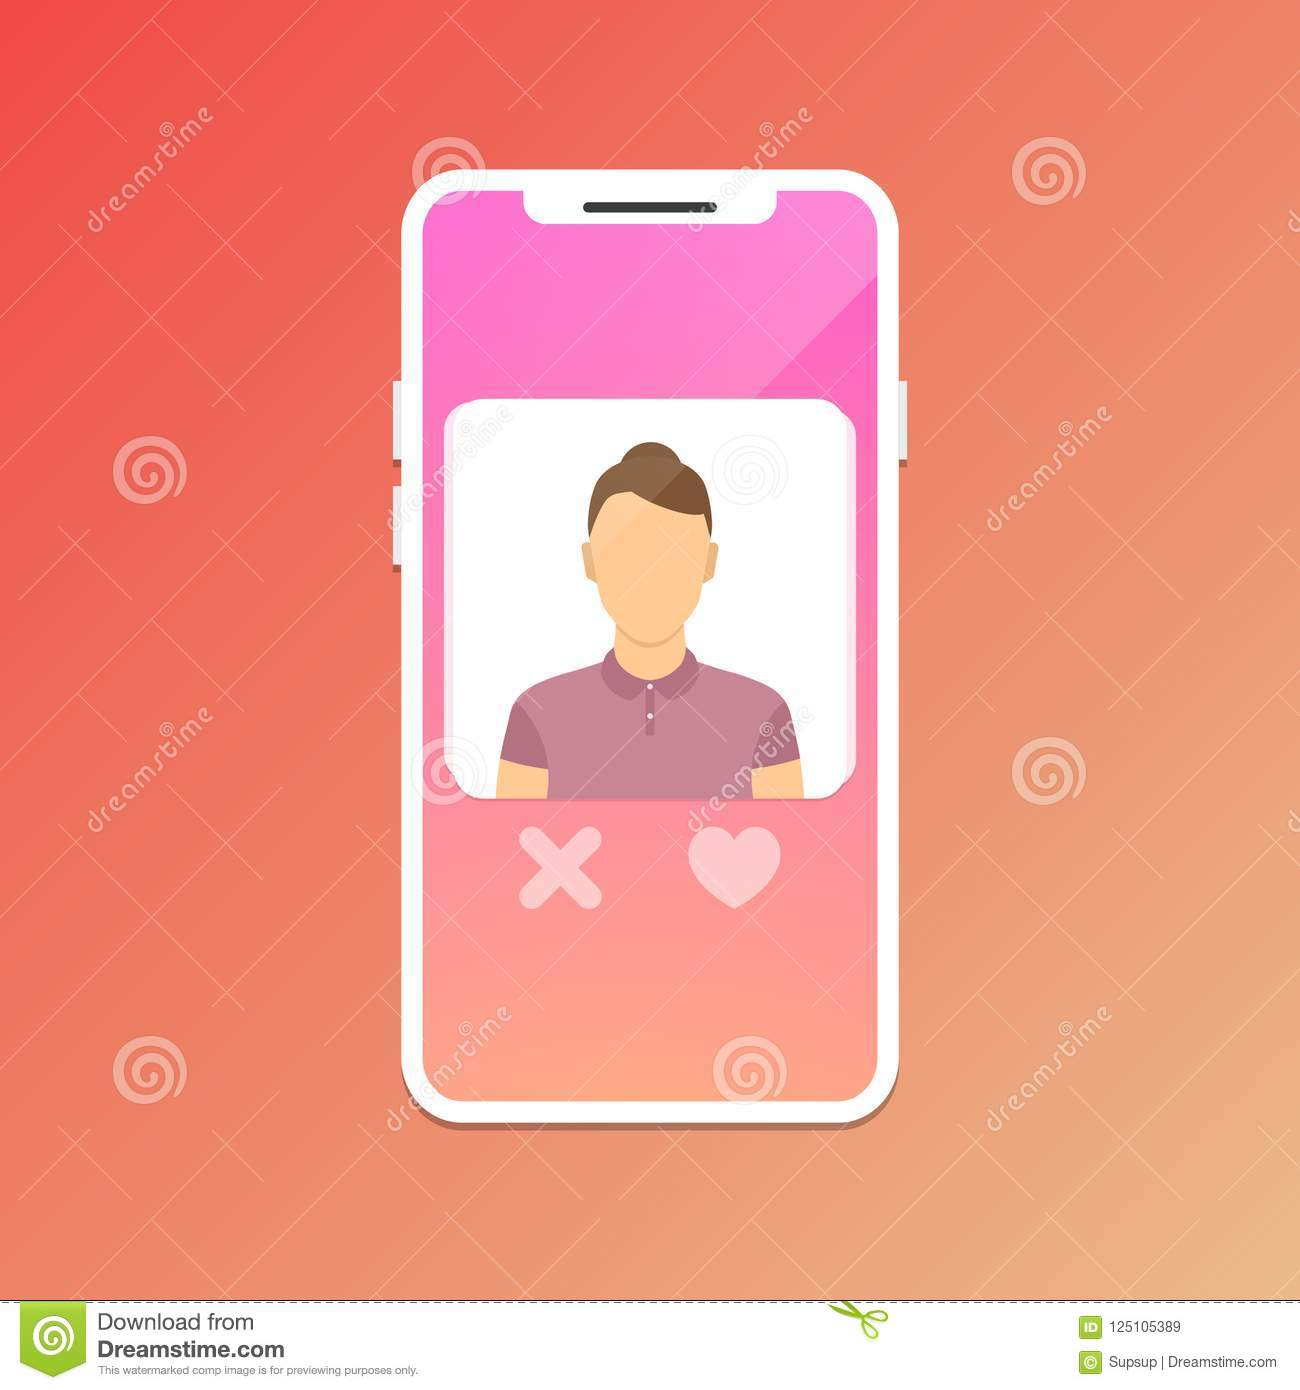 dating apps for phones